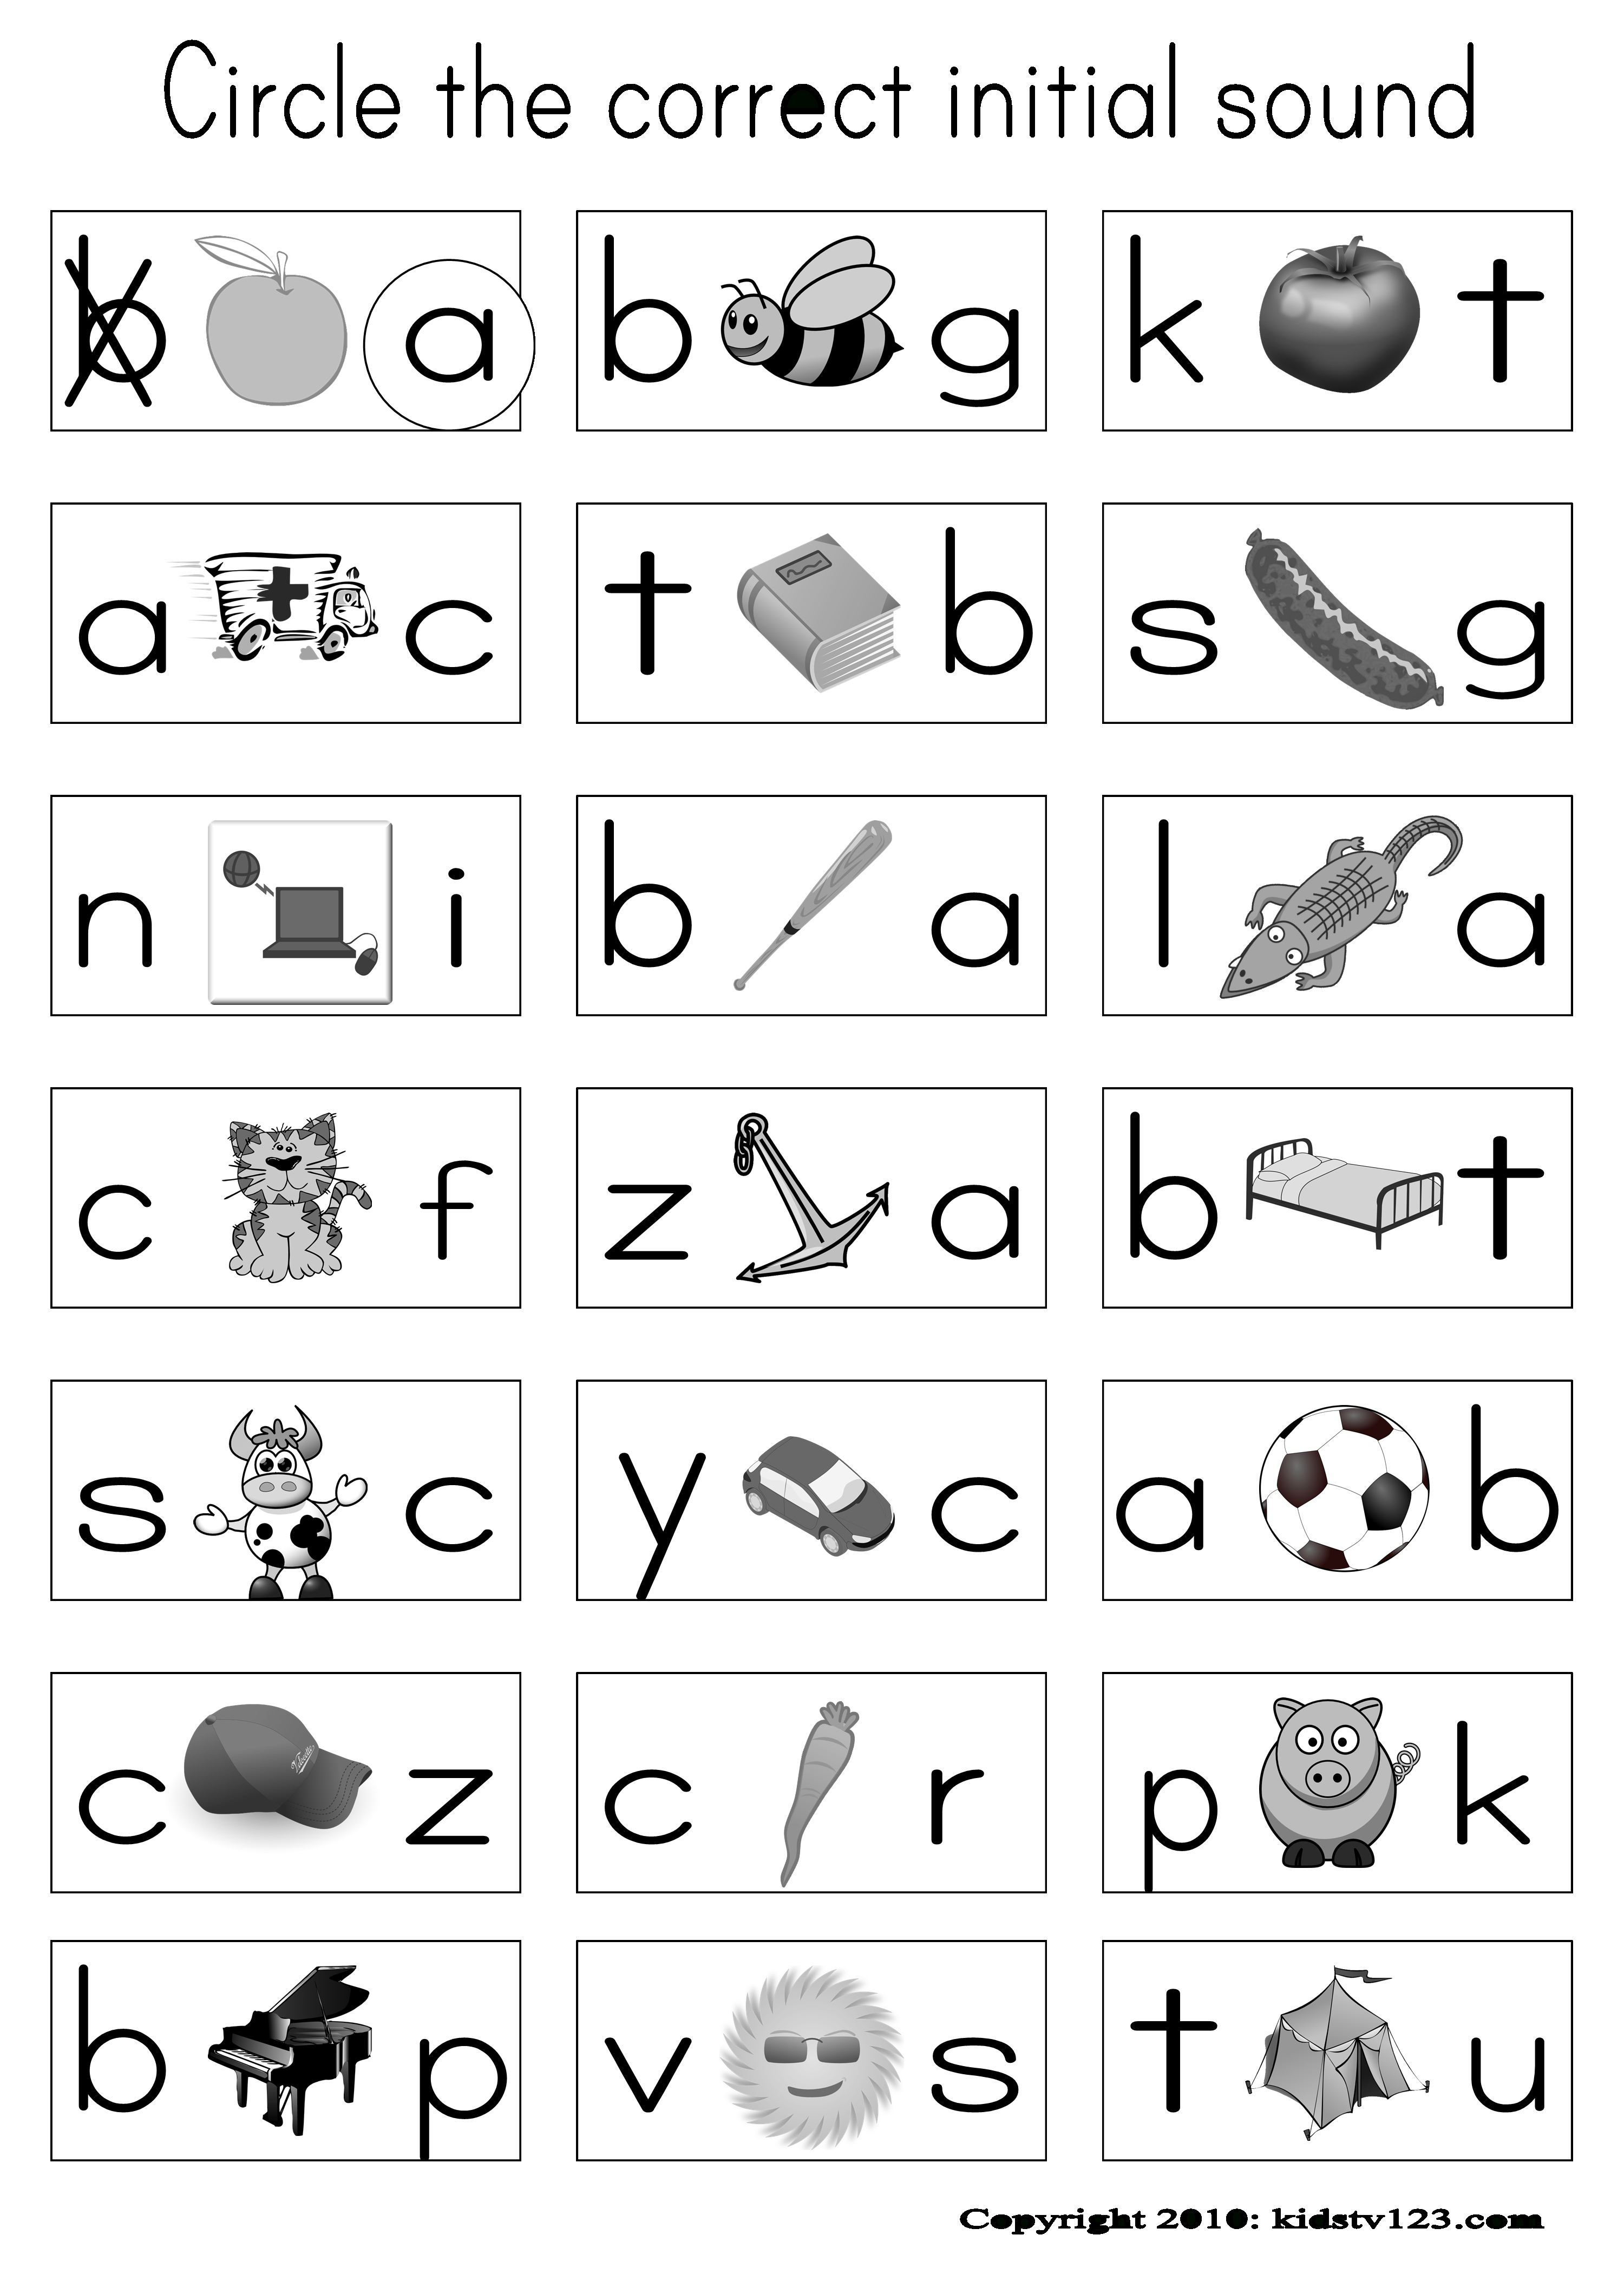 Have Pictures On Their Sheet And When I Say The Word In Spanish - Hooked On Phonics Free Printable Worksheets